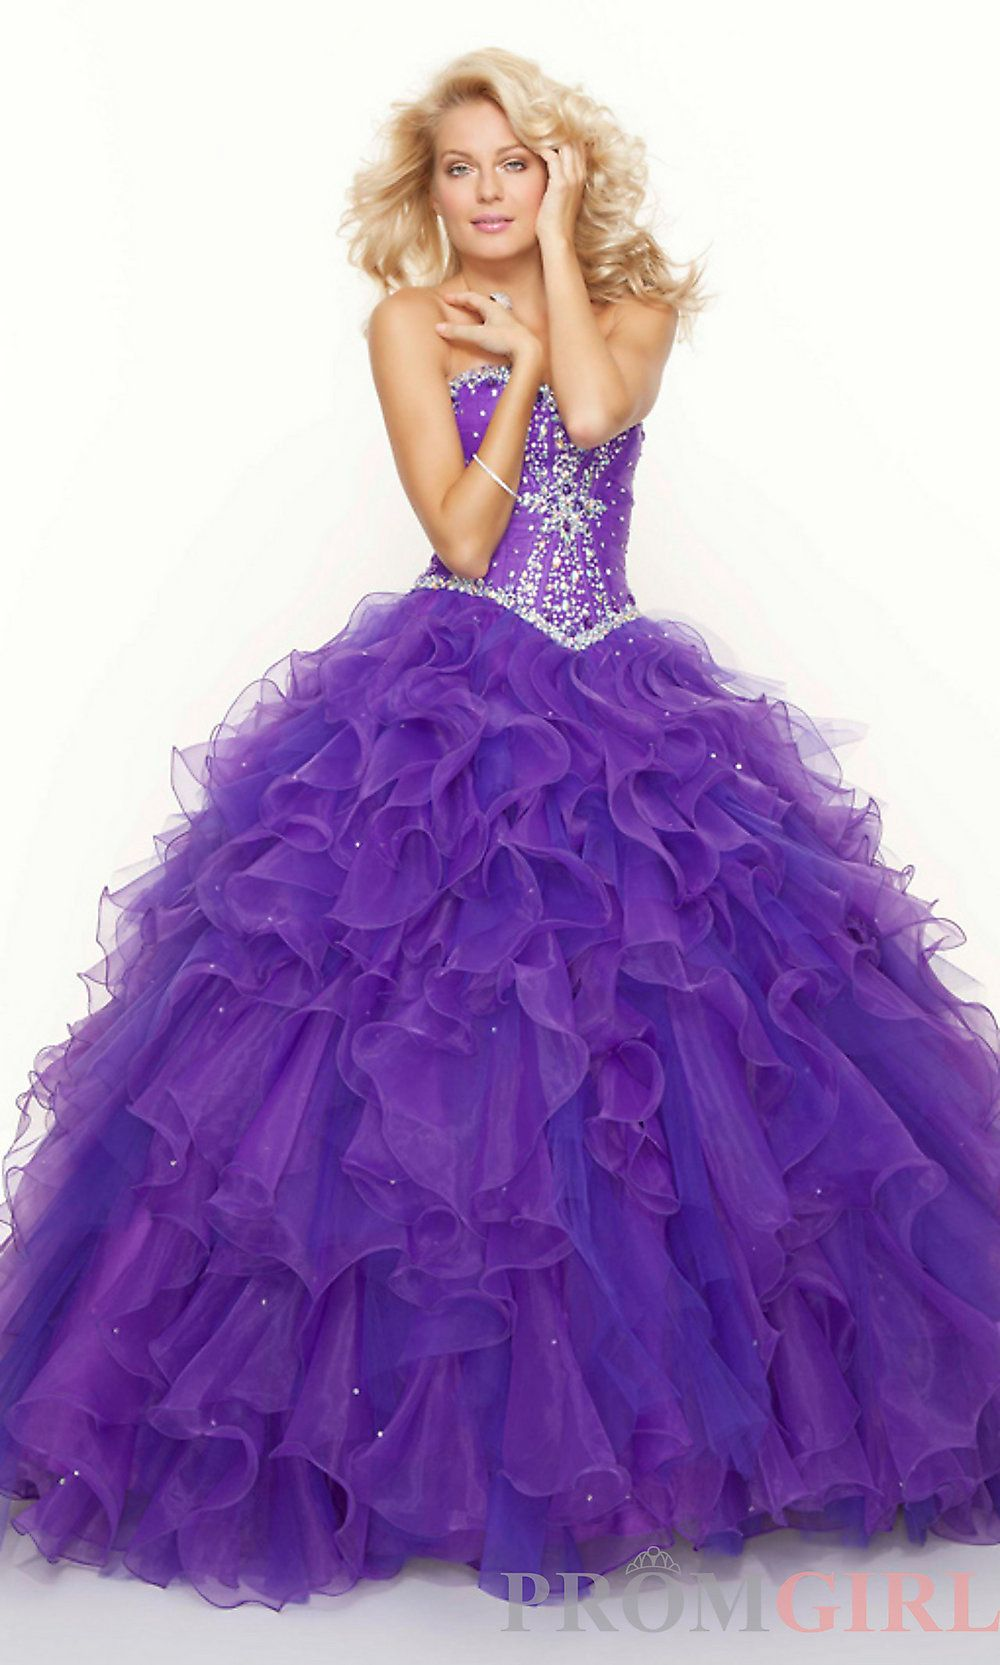 Ruffled Quinceanera/Prom Dress/Formal/Evening/Bridesmaid/Party/Ball ...